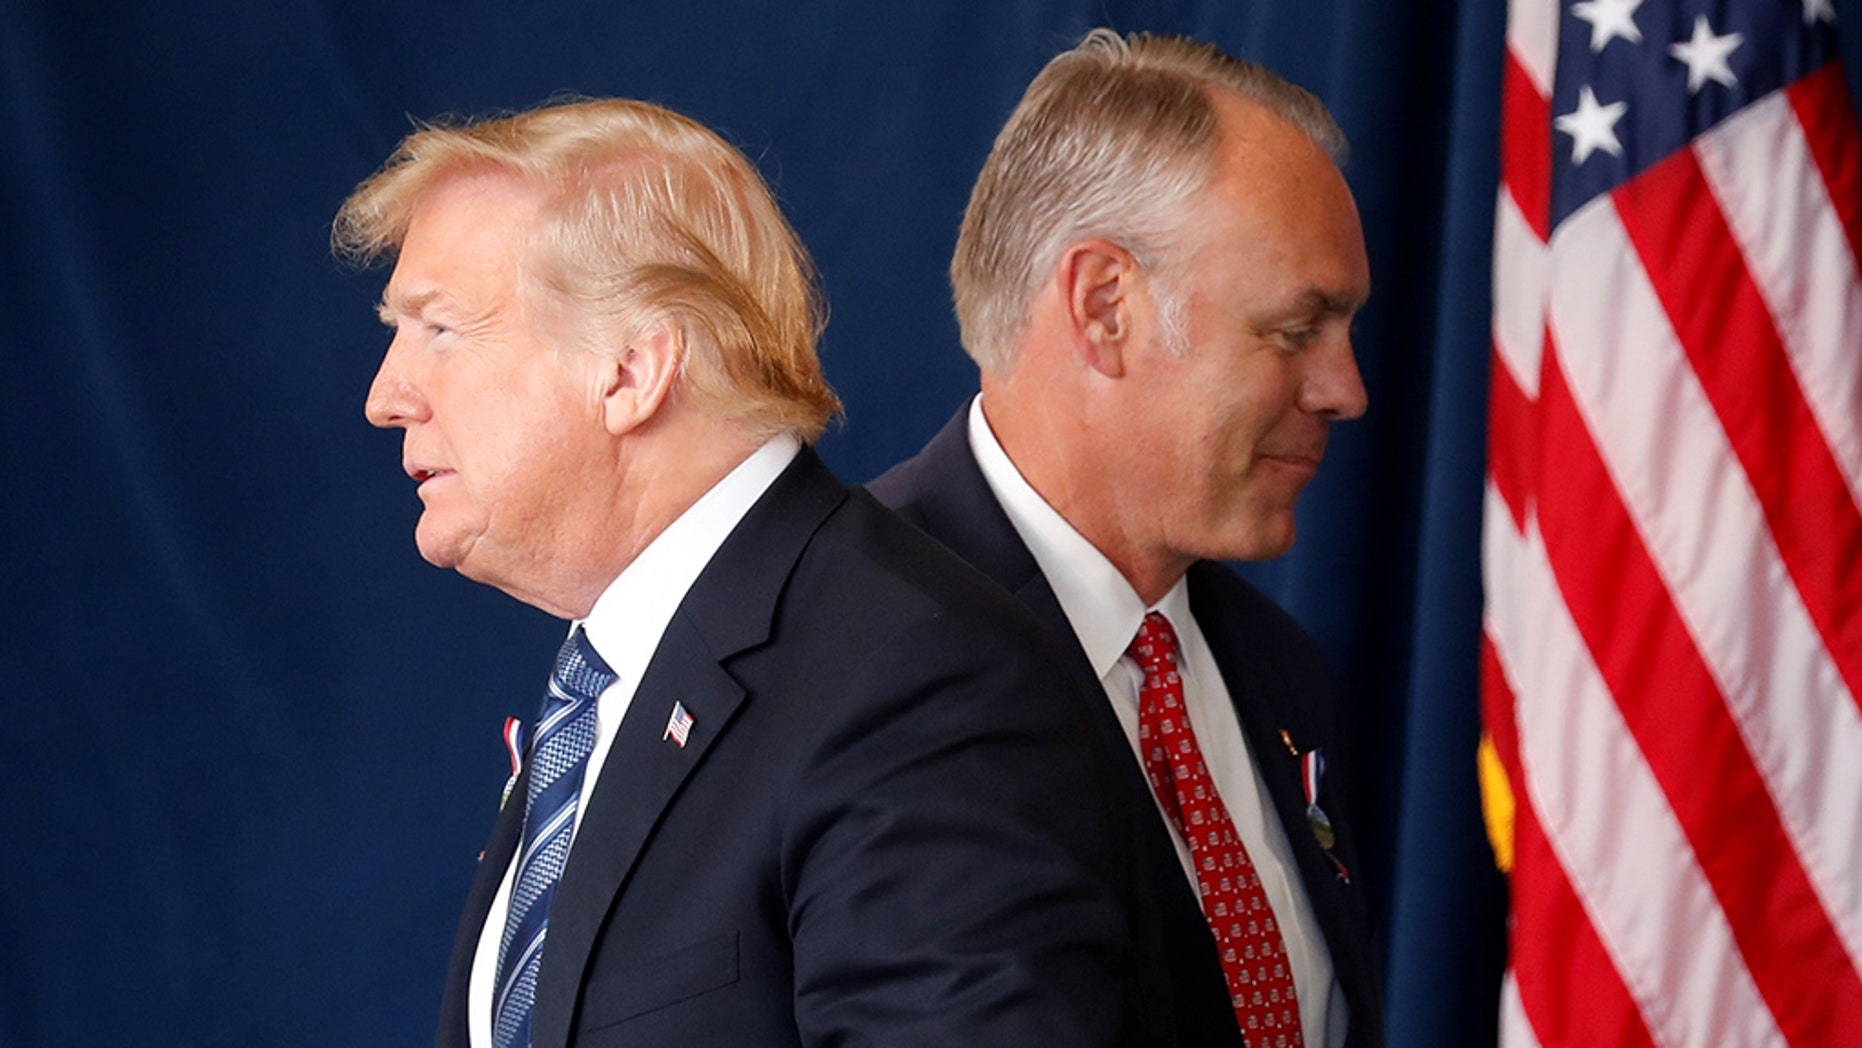 President Trump walks past Interior Secretary Ryan Zinke at a 9/11 observance in Pennsylvania.